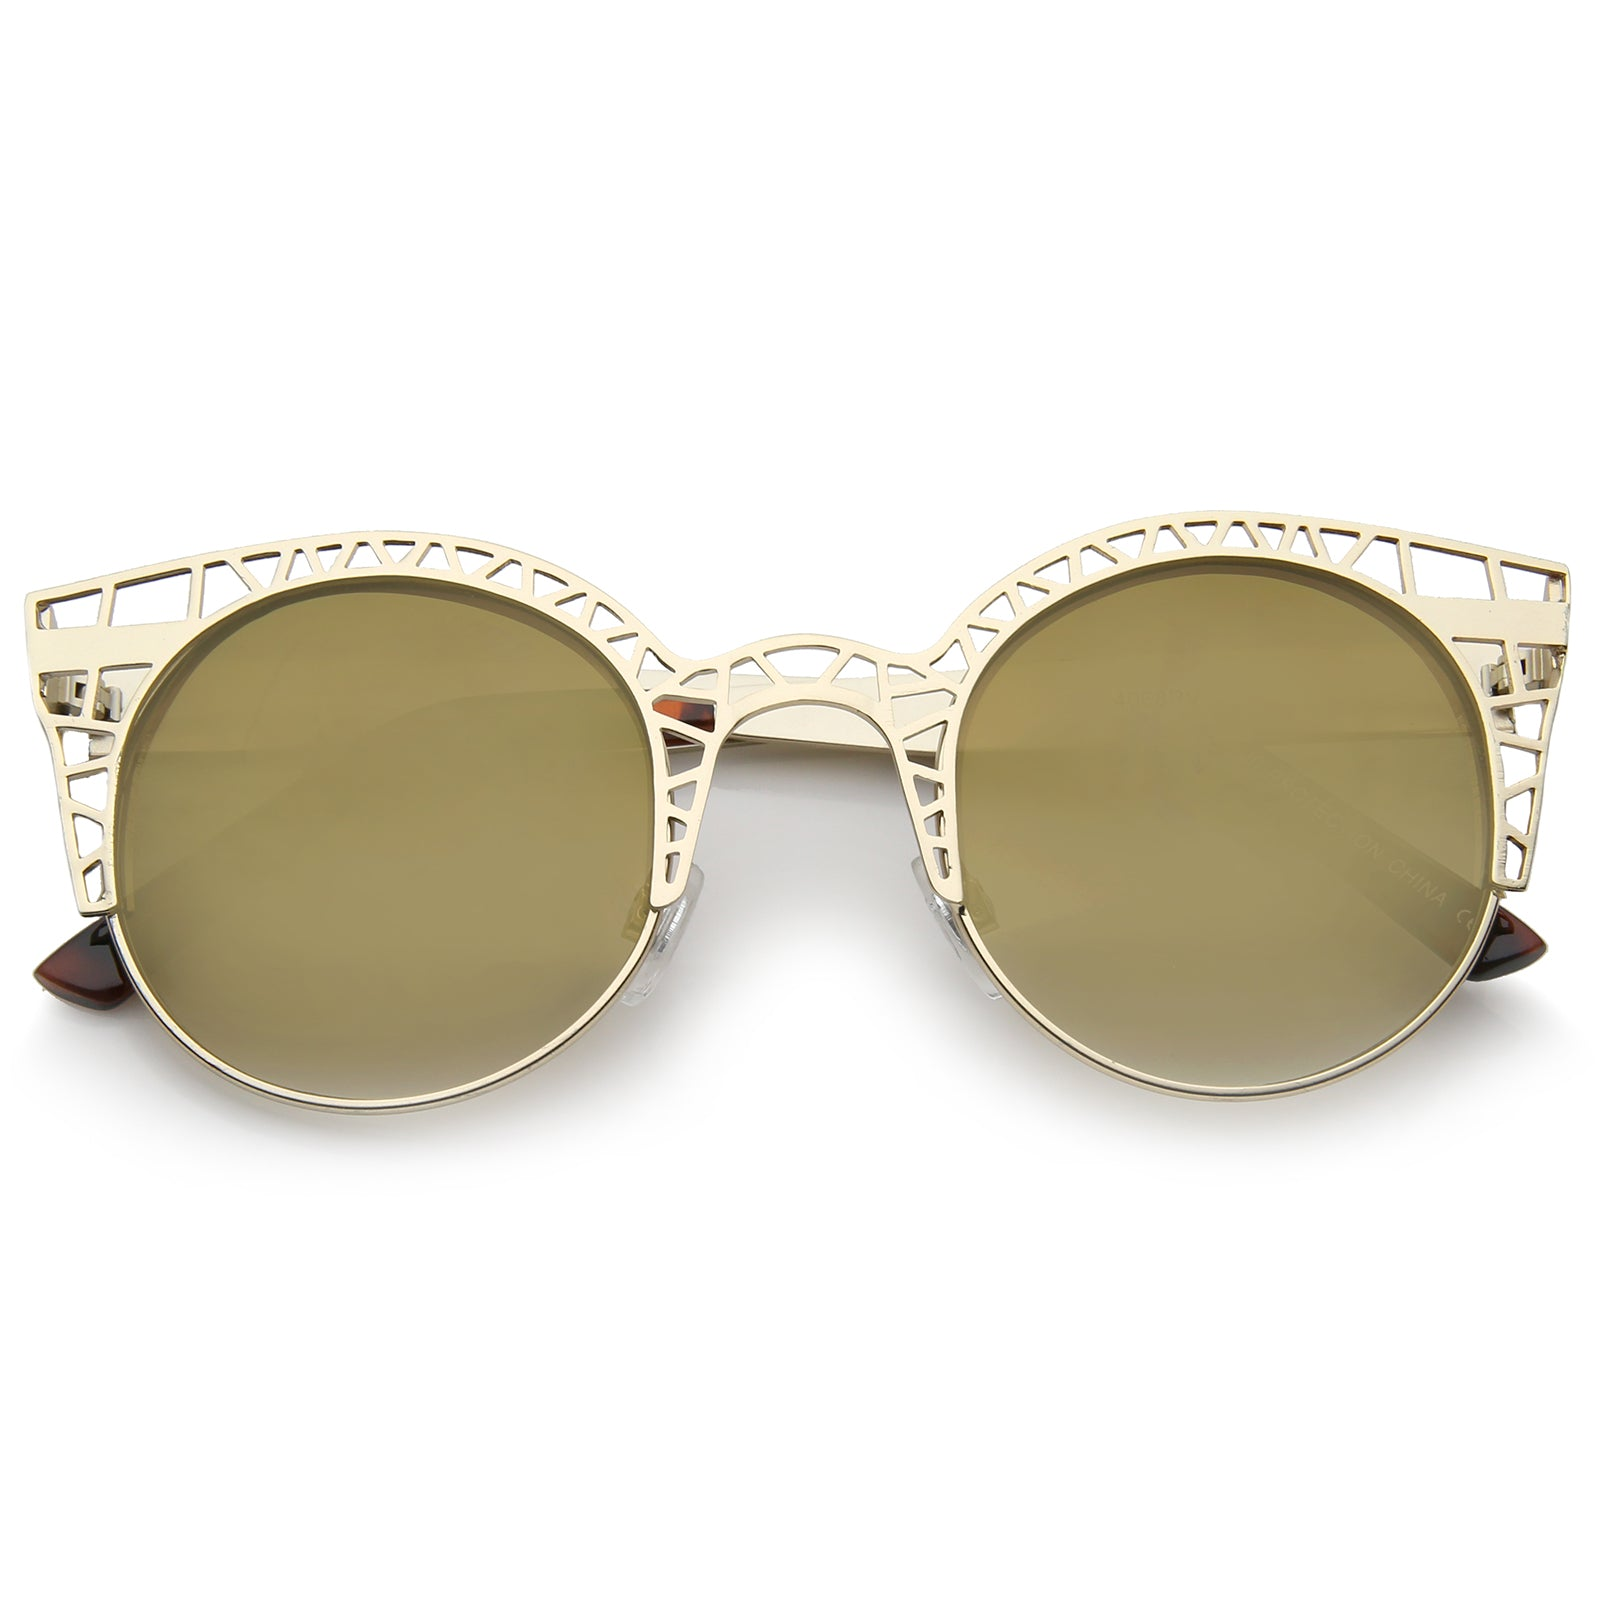 86d16e7c3b56e Women s Metal Cut Out Frame Colored Mirror Lens Round Cat Eye ...